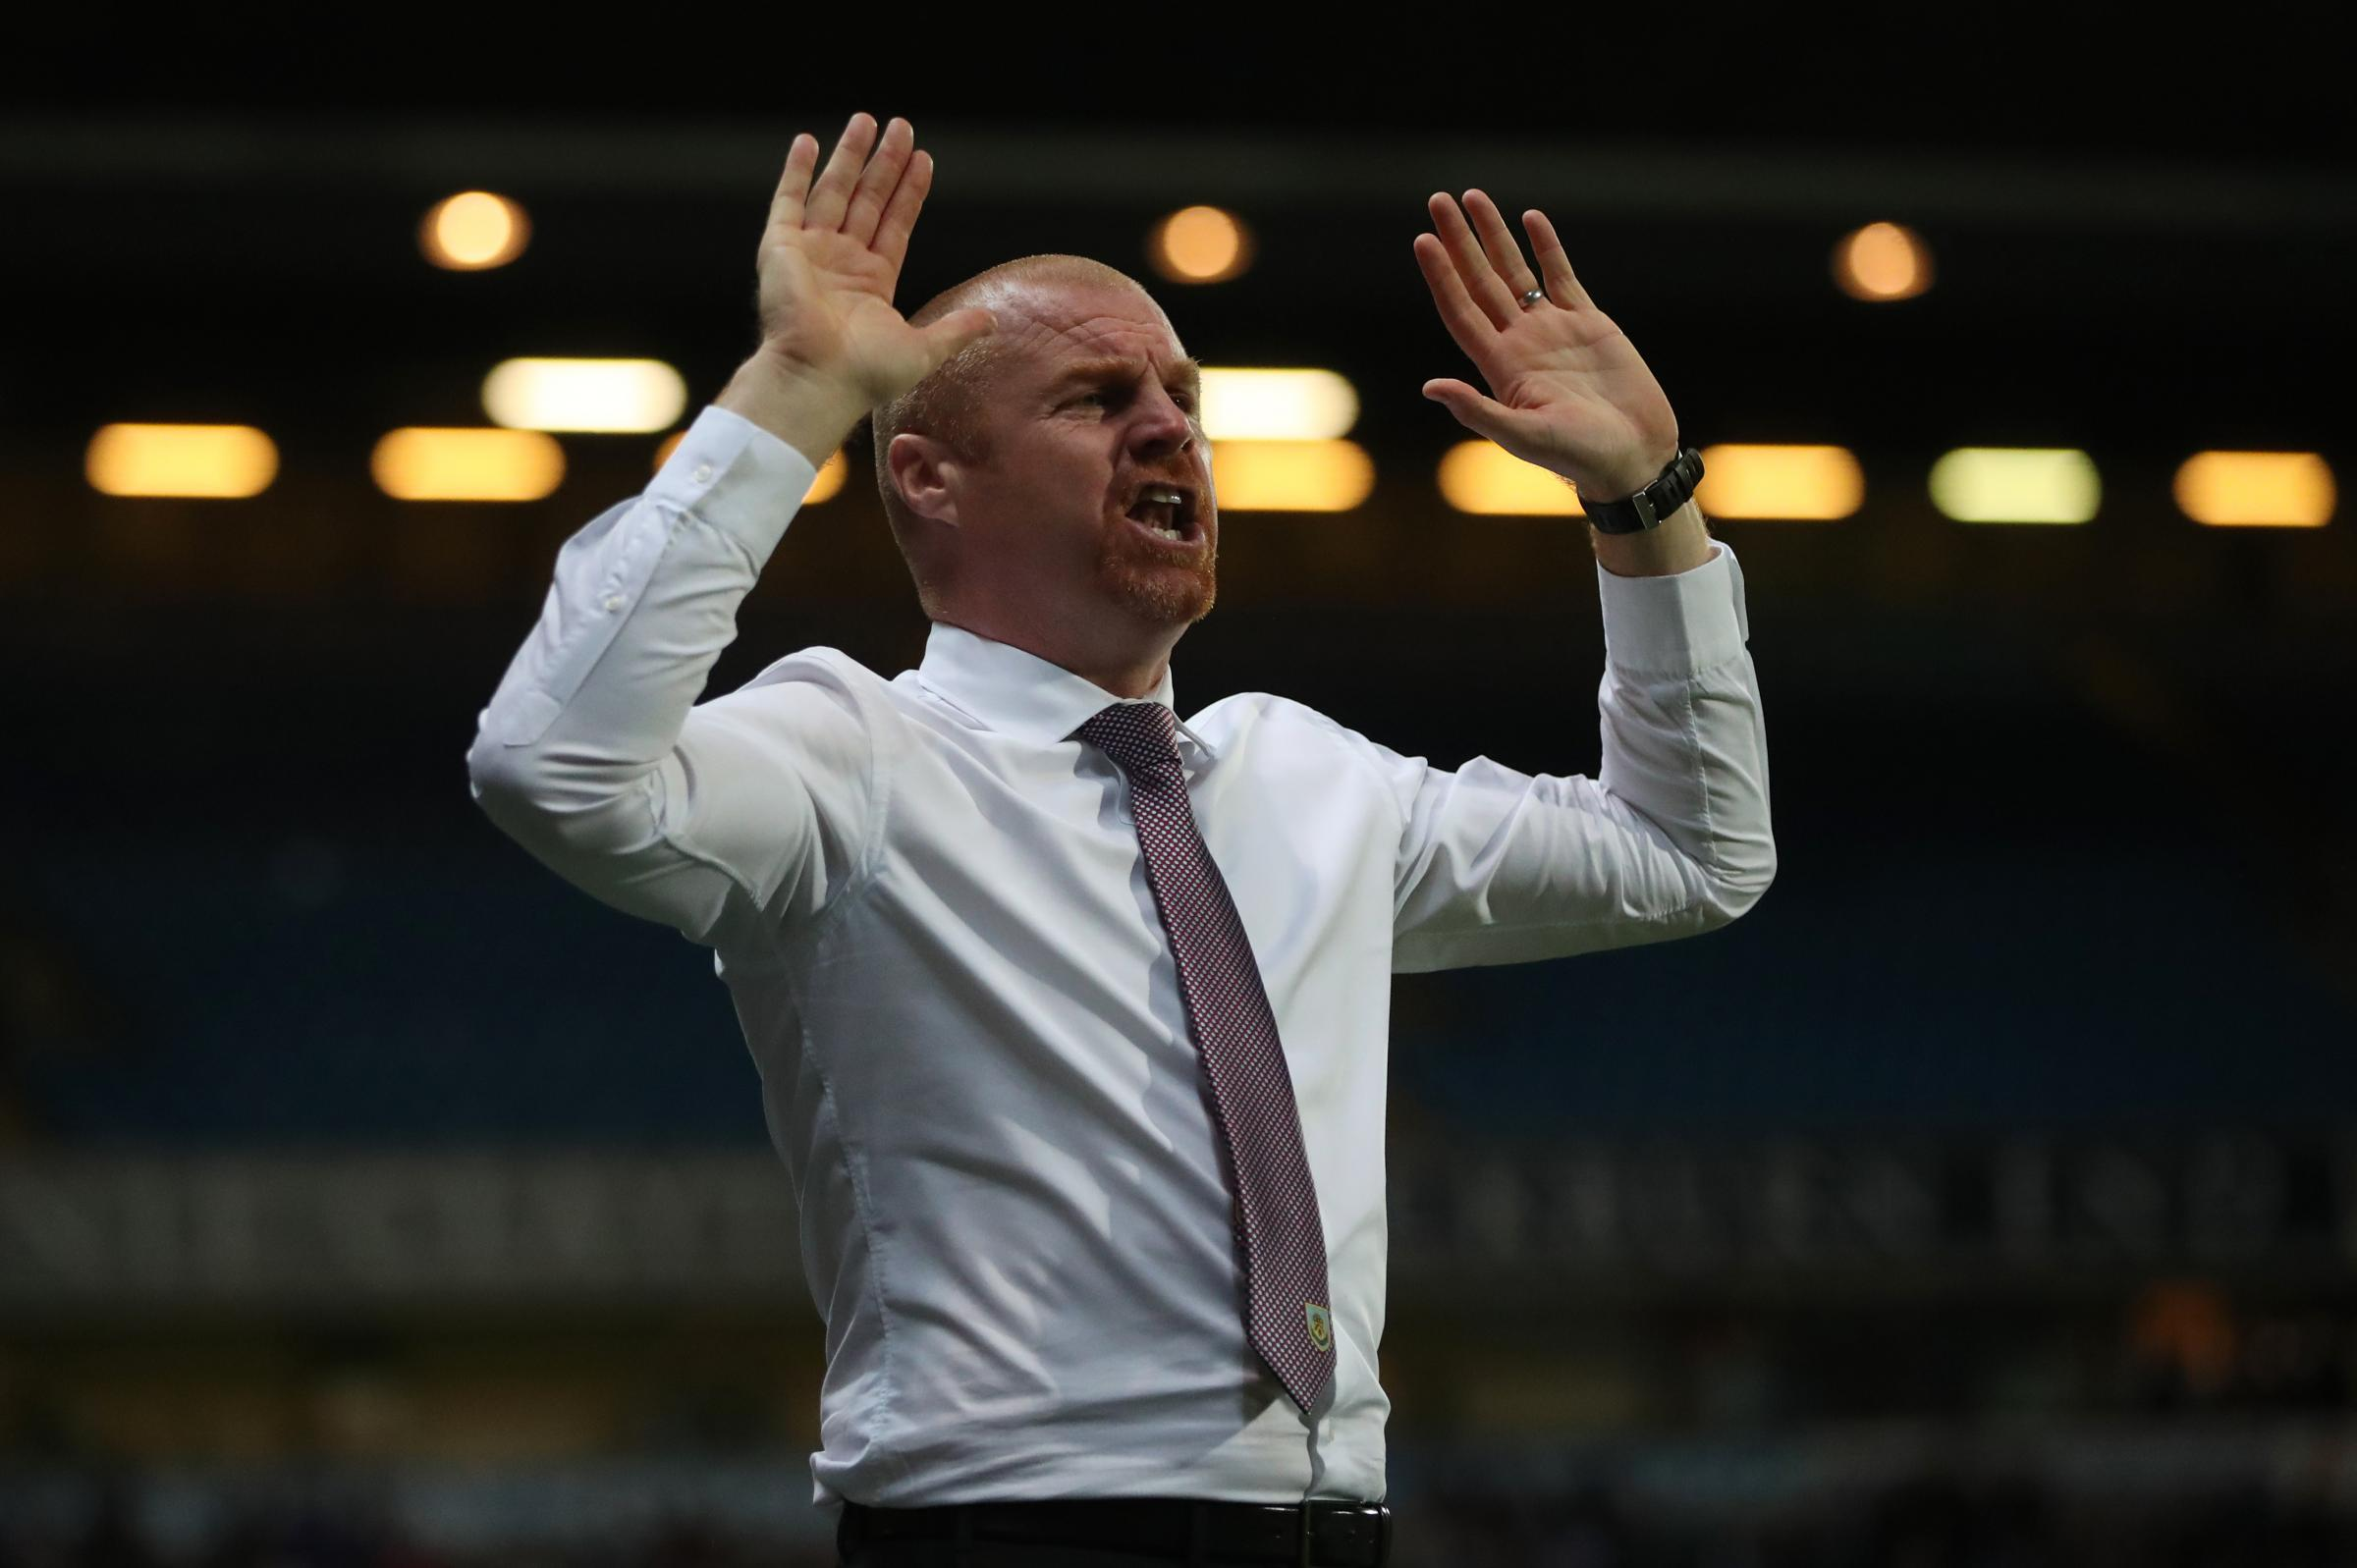 Dyche: I've been asked to stop talking about it, but diving has to be stopped